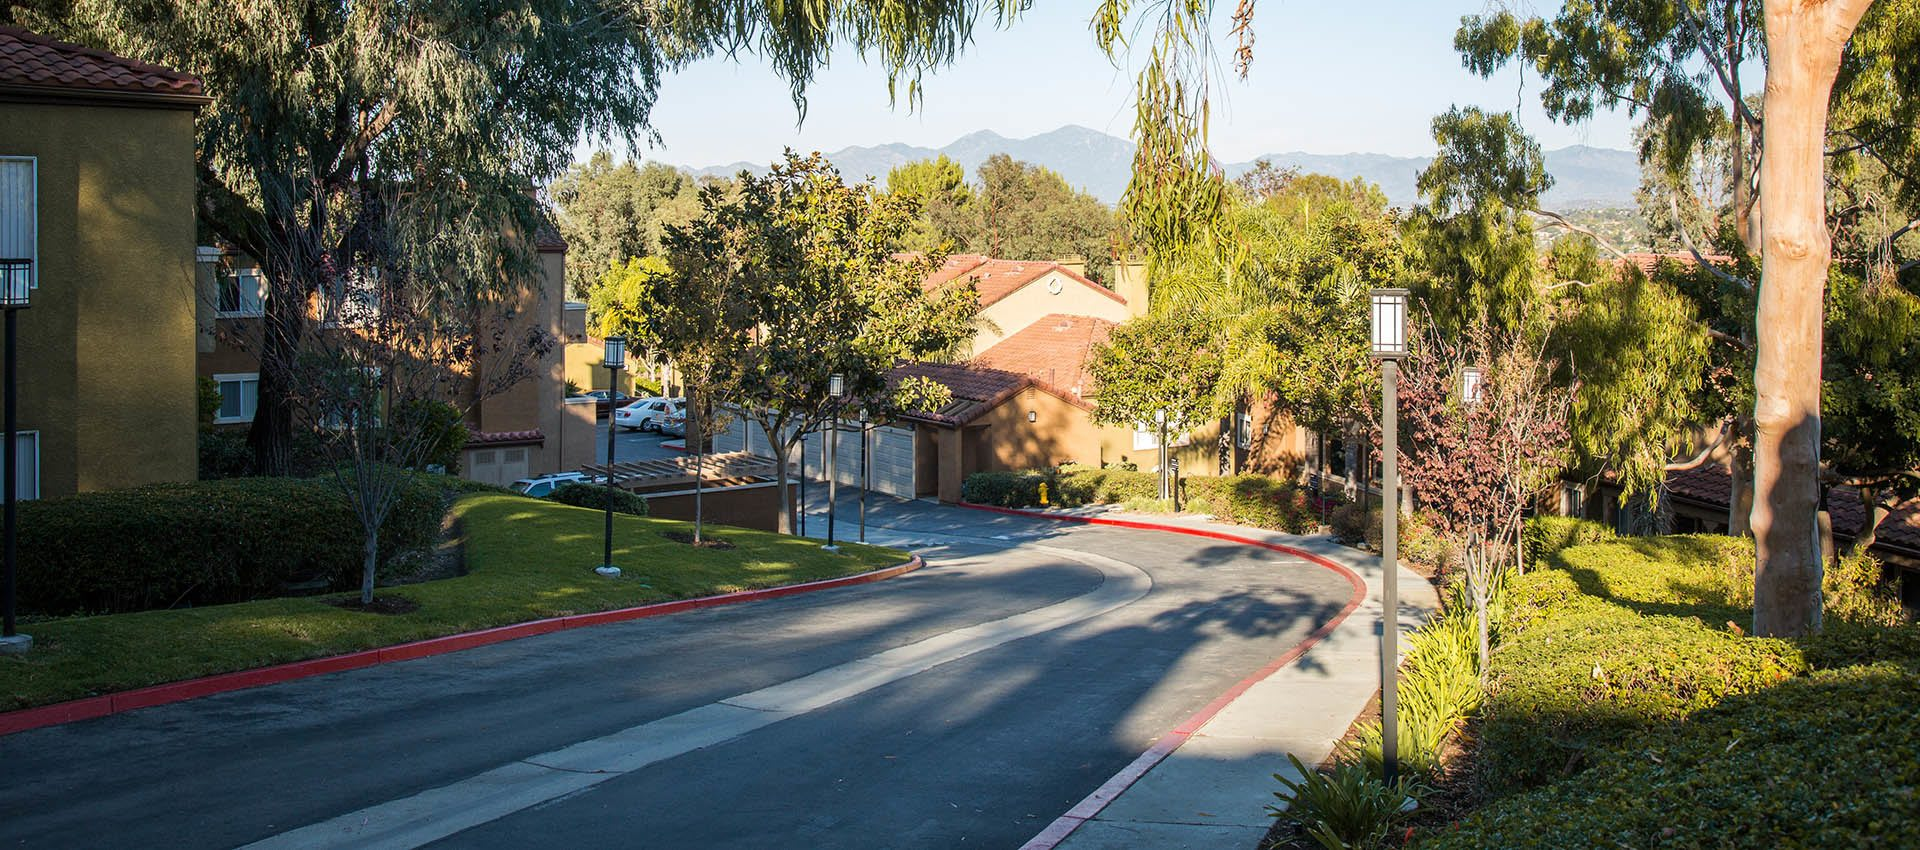 Quiet Street In Our Peaceful Neighborhood at Niguel Summit Condominium Rentals in Laguna Niguel, CA